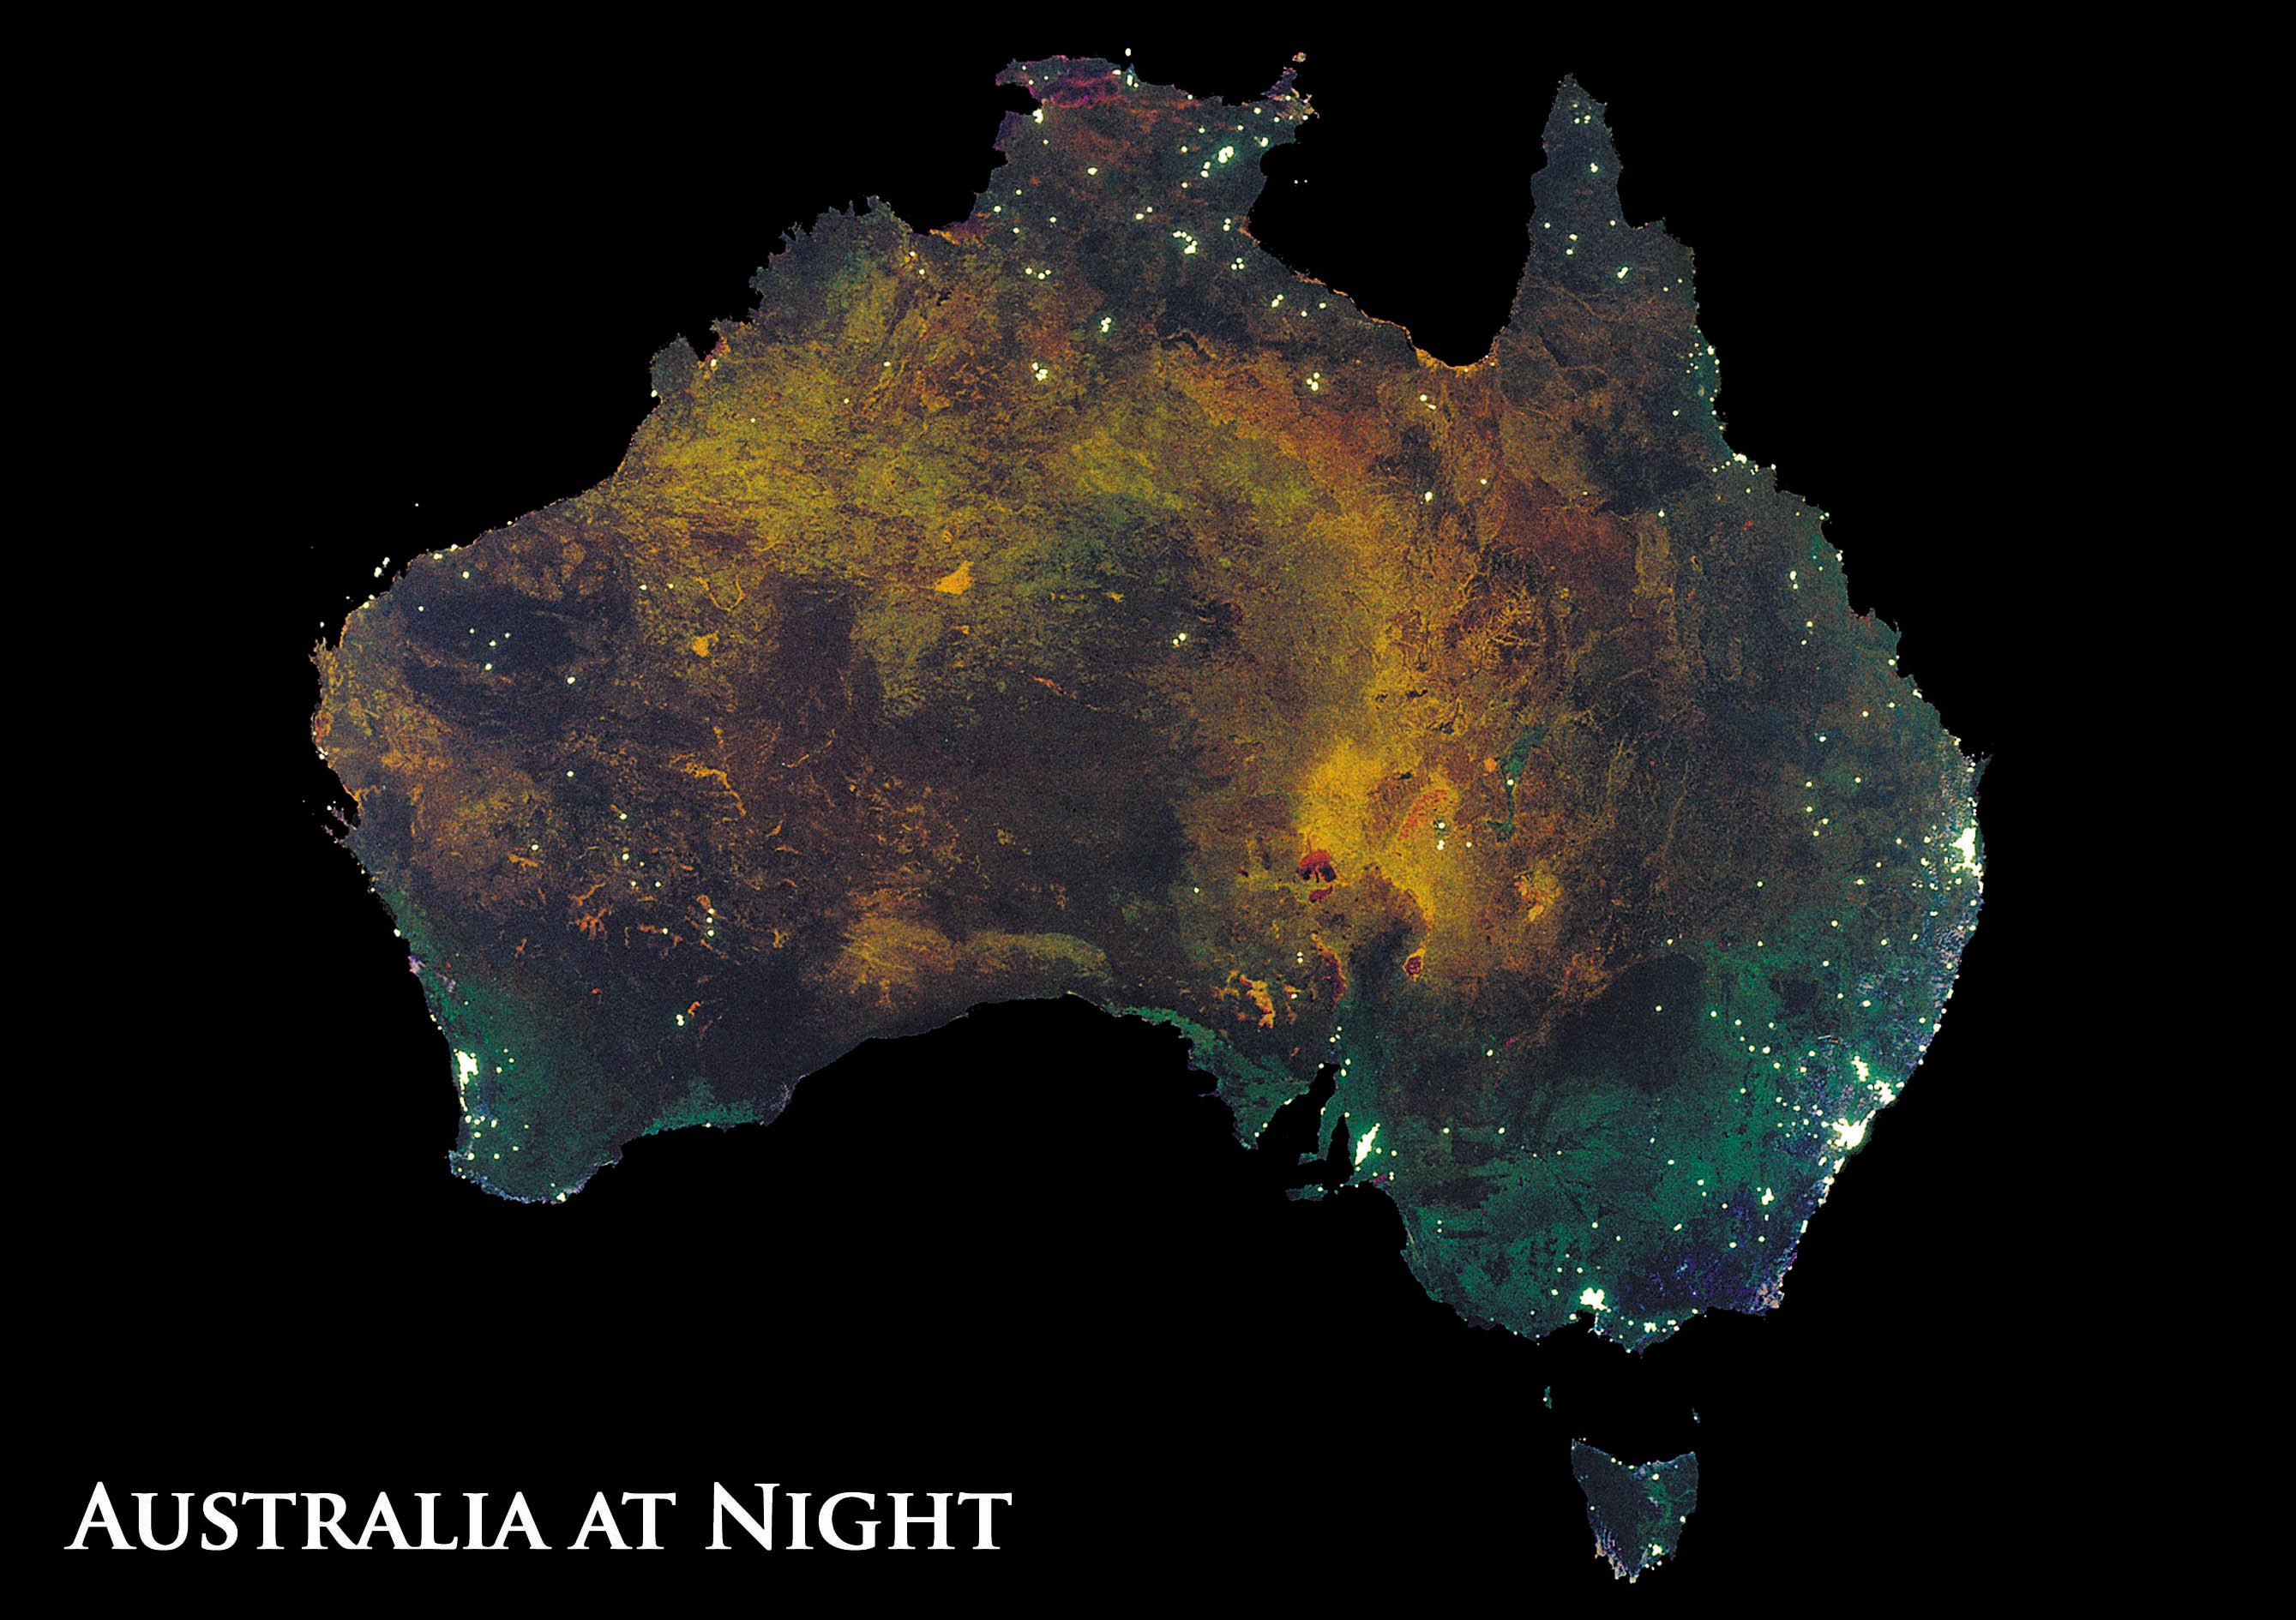 Astrovisuals Australia at Night Postcard